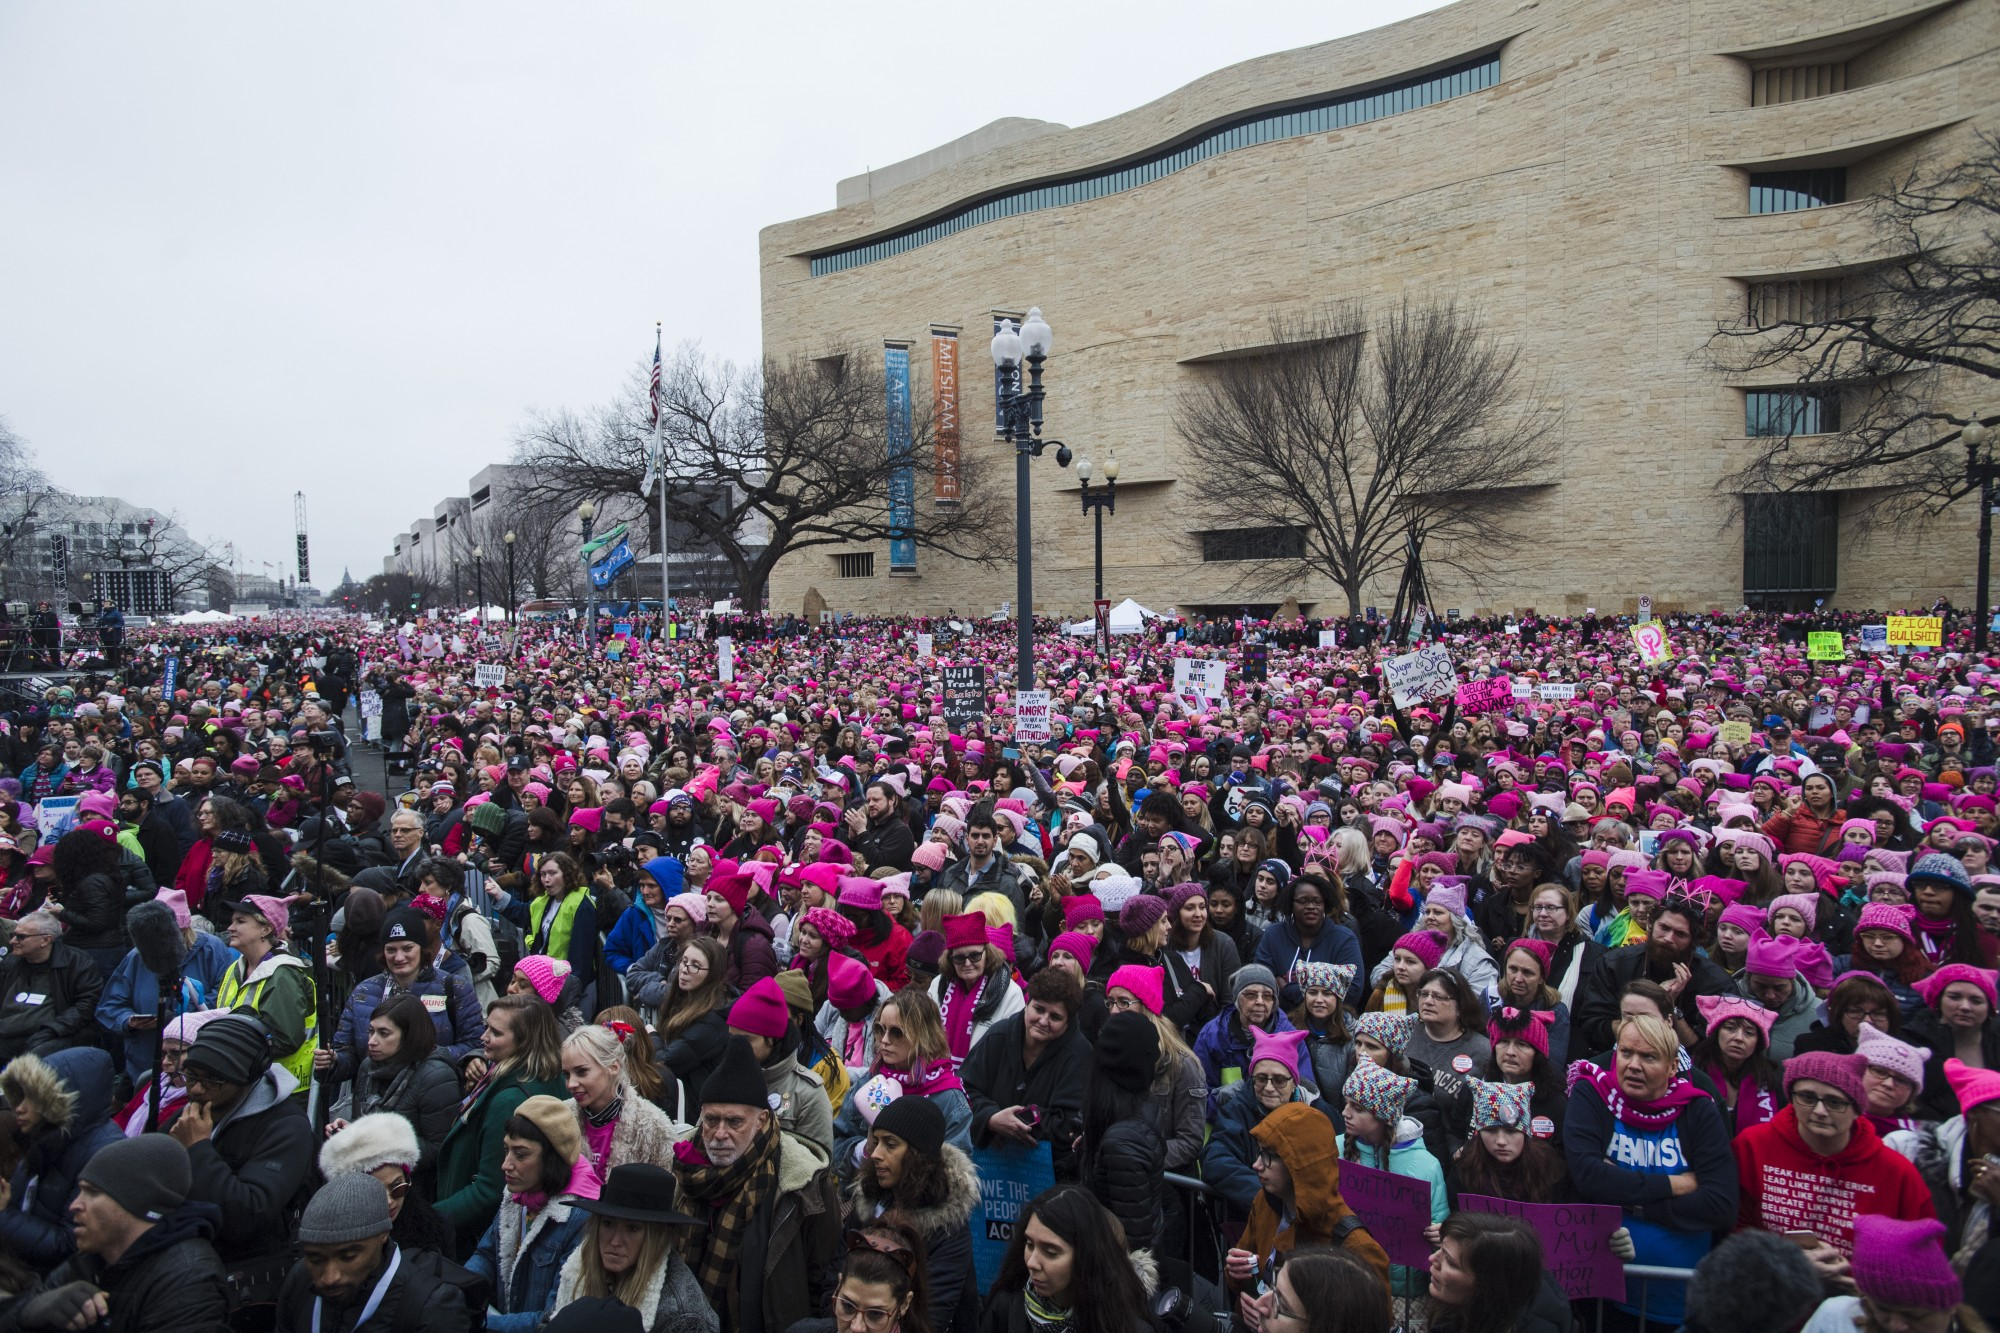 Crowds of people descend on Washington. Amanda Voisard / The Washington Post